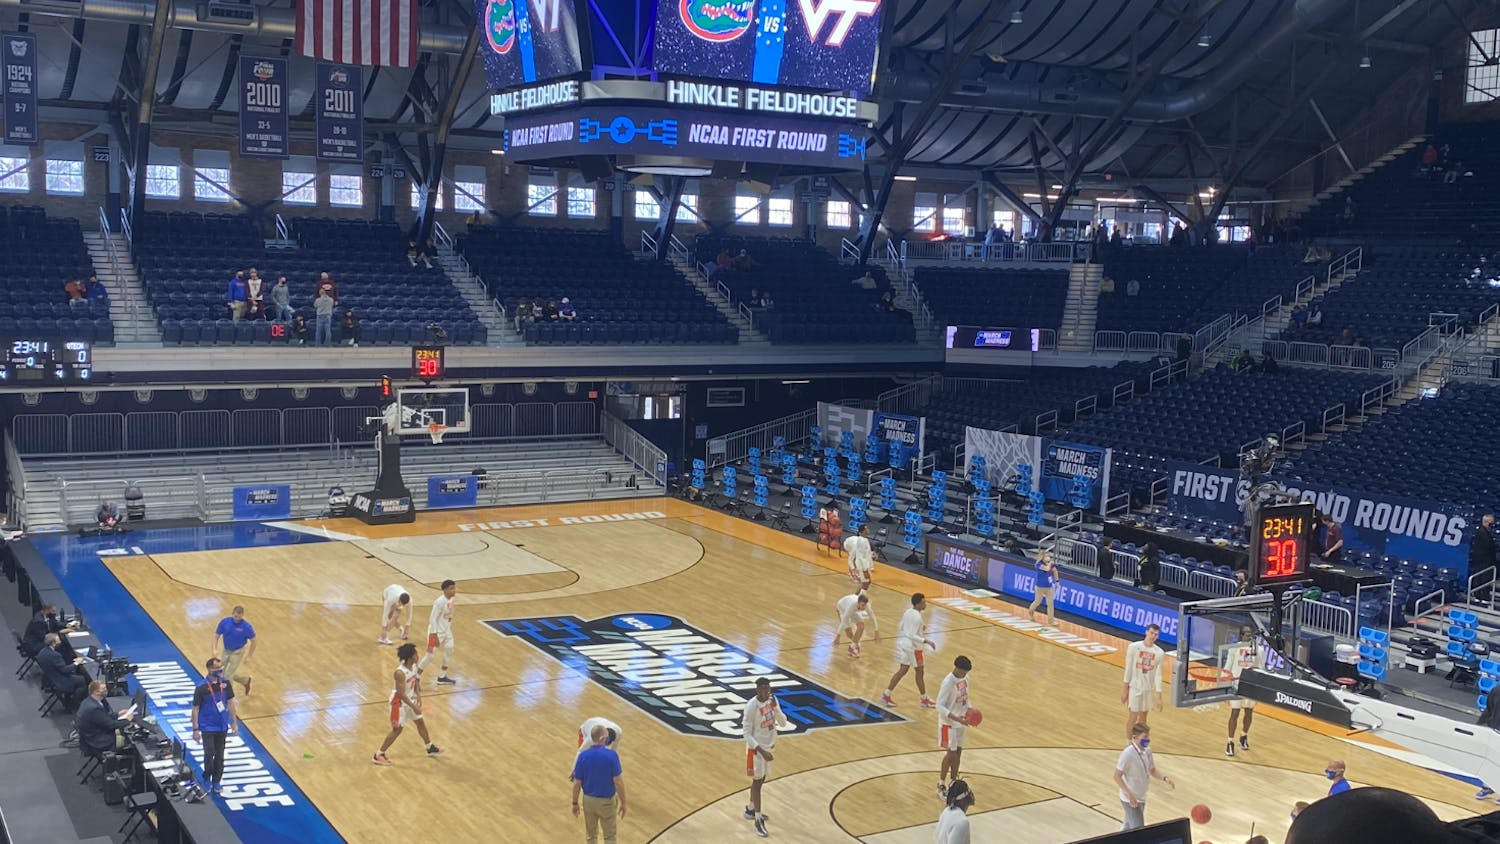 Florida warms up at the hallowed Hinkle Fieldhouse before it's first-round game against Virginia Tech Mar. 19